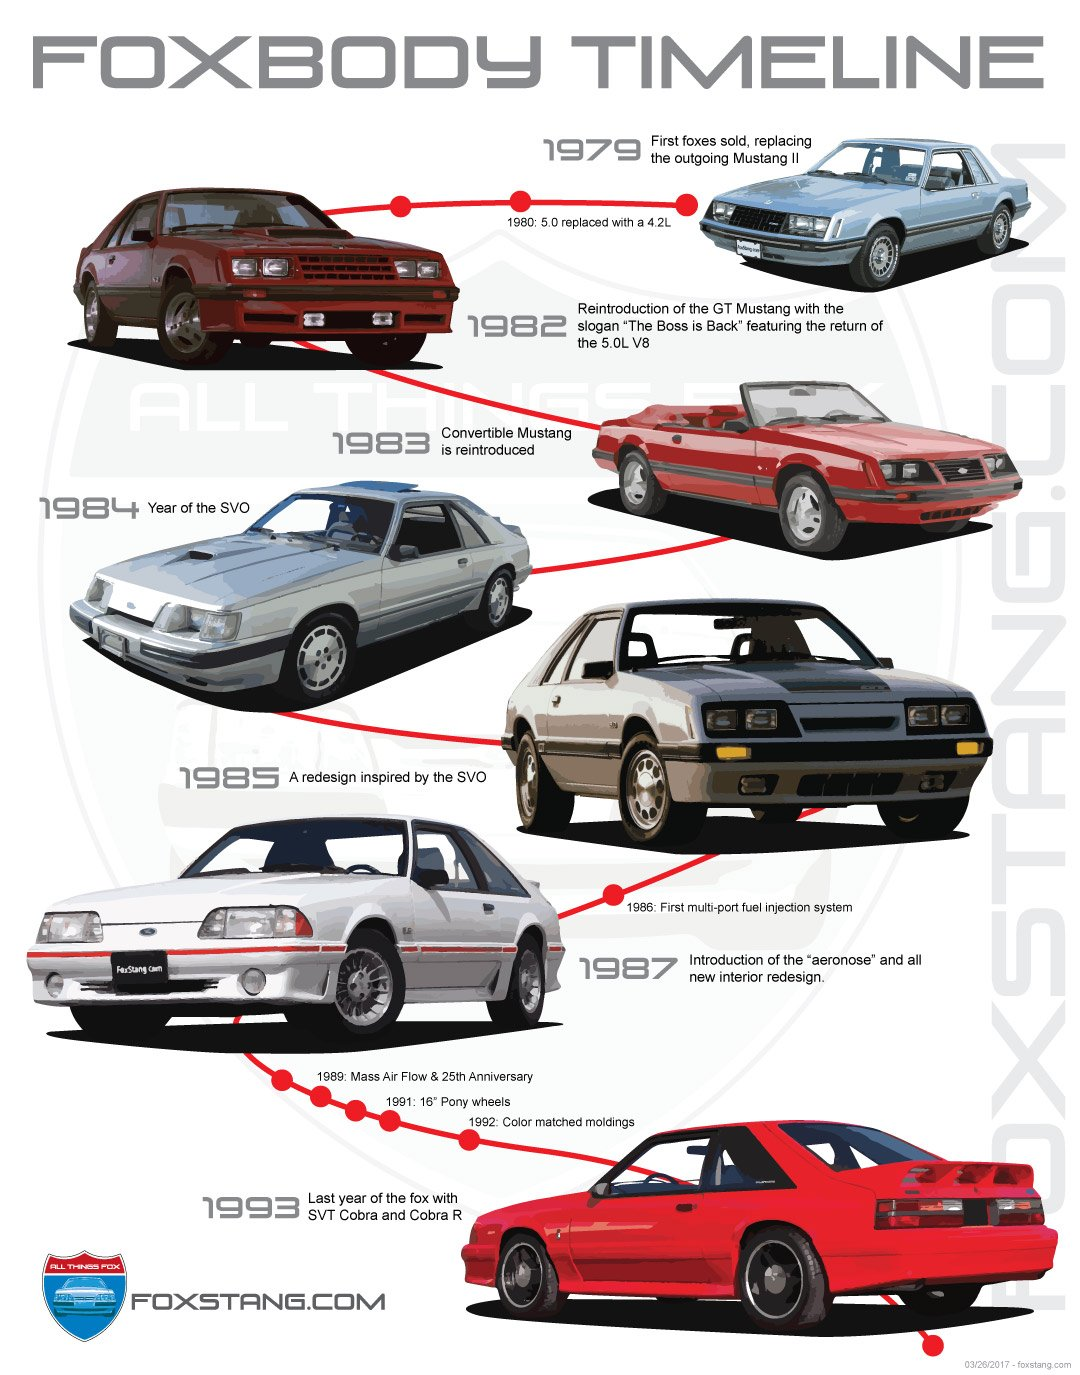 Fox Mustang 79-93 timeline